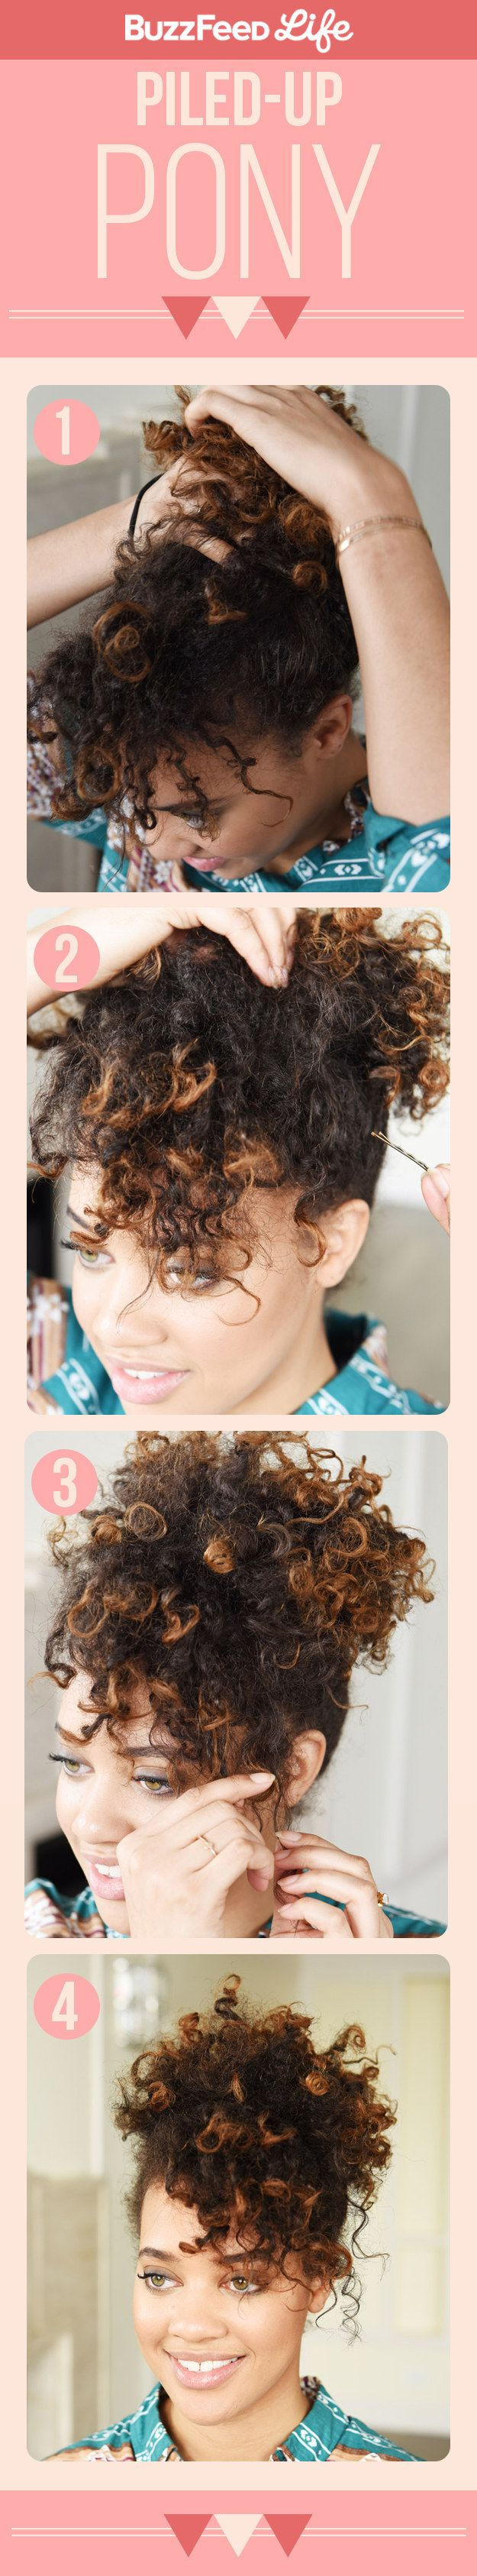 Piled-Up Pony | 26 Incredible Hairstyles You Can Learn In 10 Steps Or Less